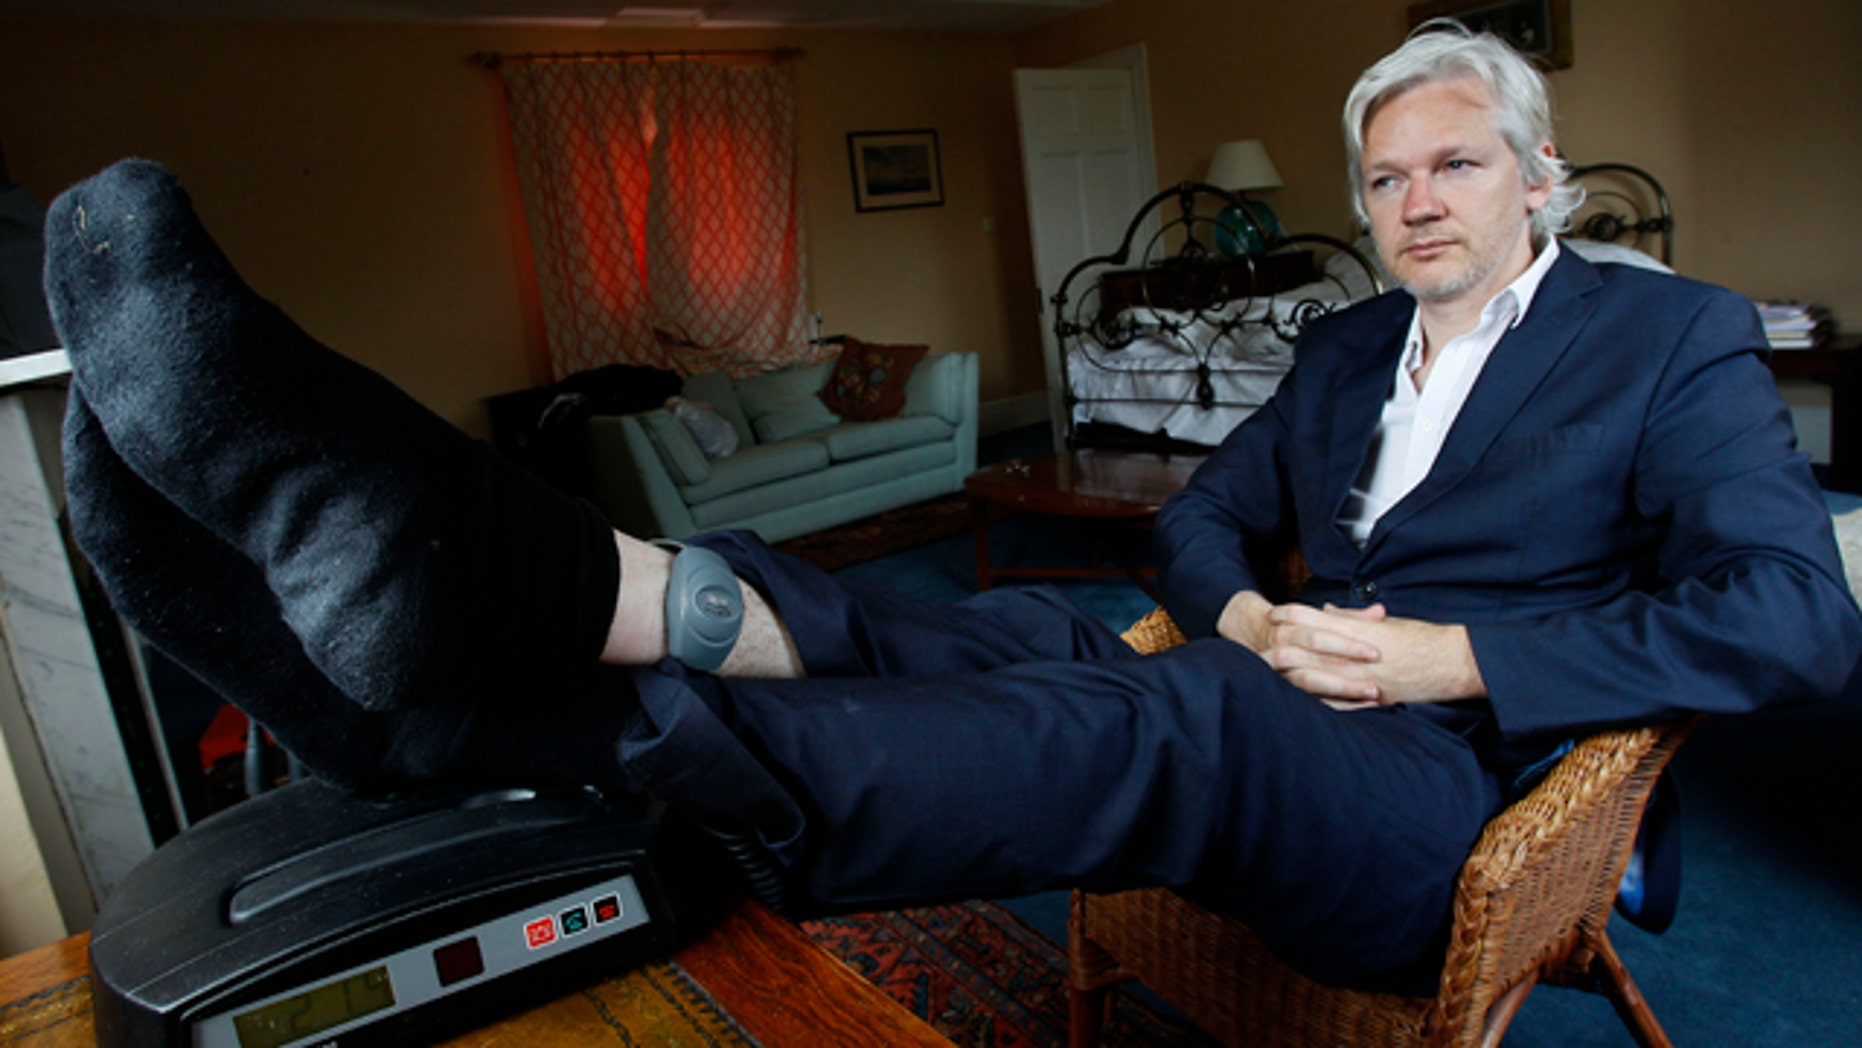 June 15, 2011: WikiLeaks founder Julian Assange is seen with his ankle security tag at the house where he is required to stay in, near Bungay, England.